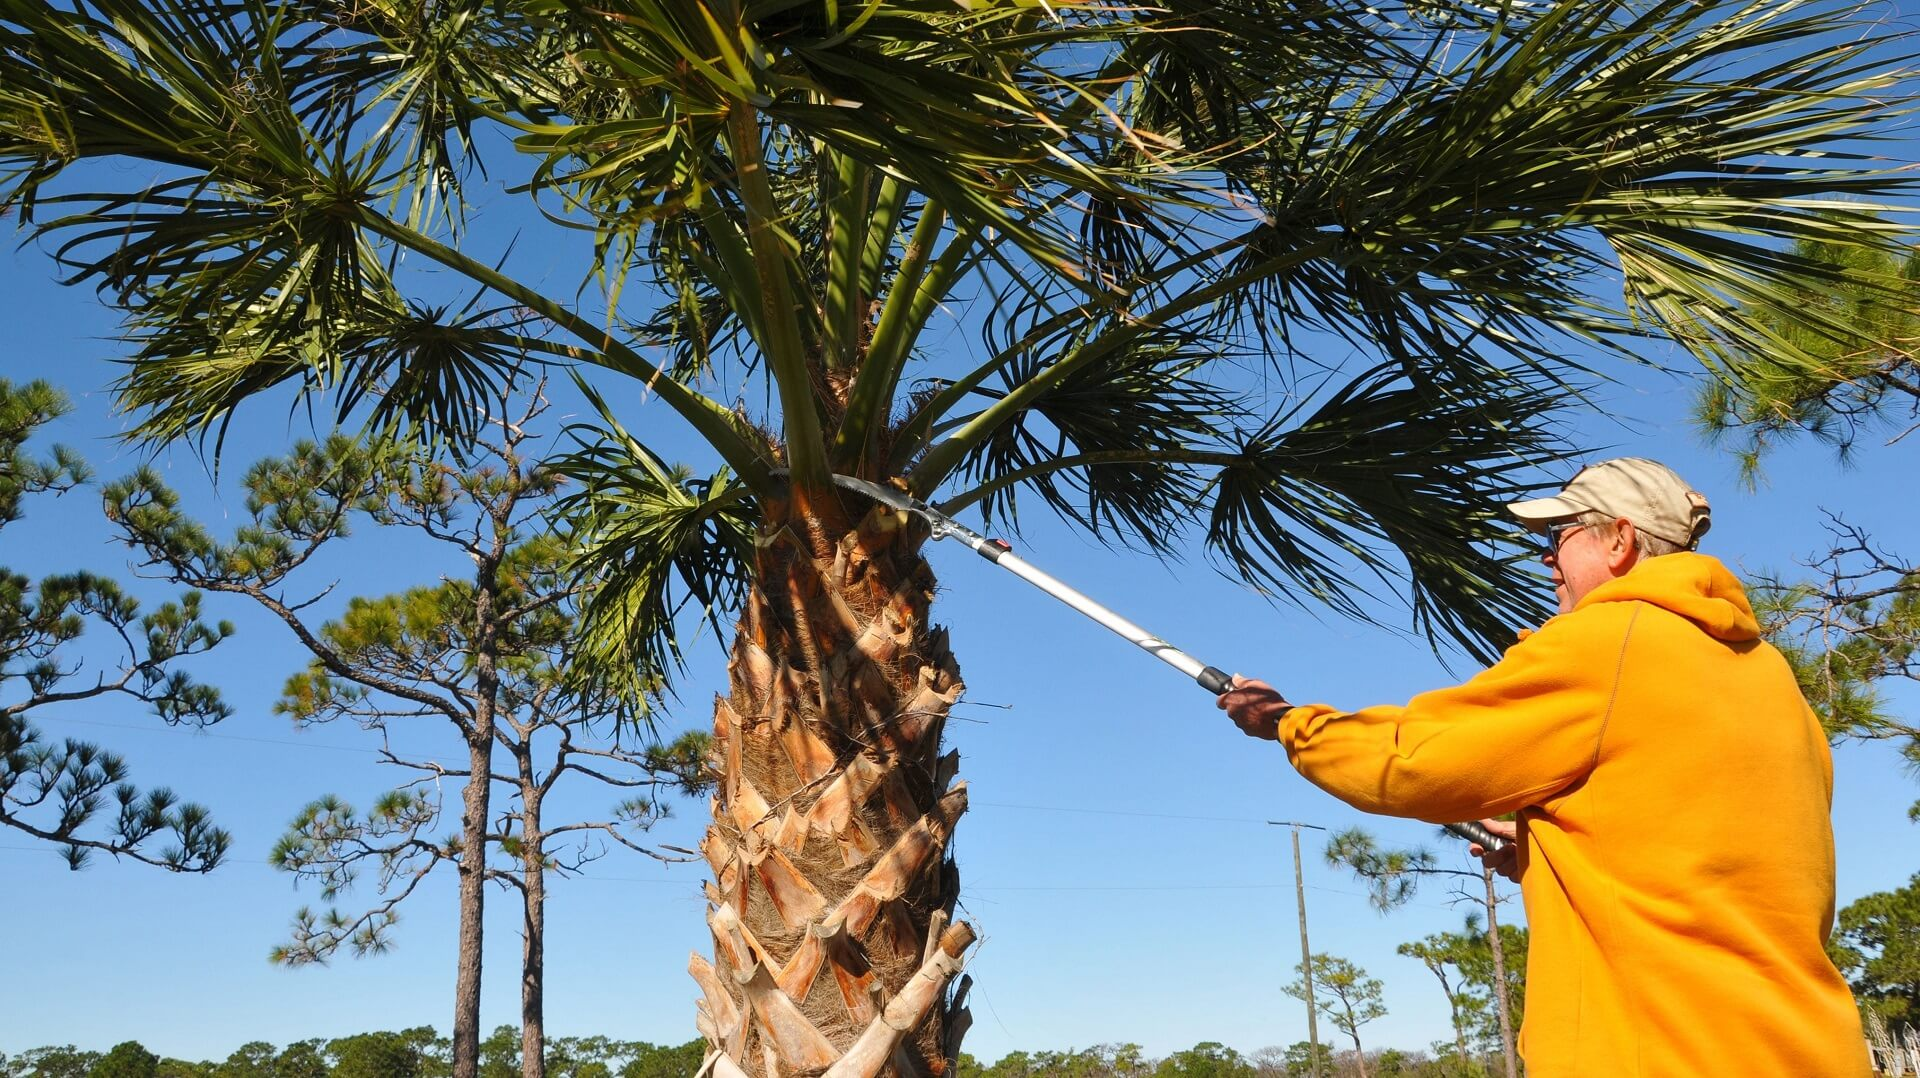 Goose Creek-Charleston Tree Trimming and Stump Grinding Services-We Offer Tree Trimming Services, Tree Removal, Tree Pruning, Tree Cutting, Residential and Commercial Tree Trimming Services, Storm Damage, Emergency Tree Removal, Land Clearing, Tree Companies, Tree Care Service, Stump Grinding, and we're the Best Tree Trimming Company Near You Guaranteed!